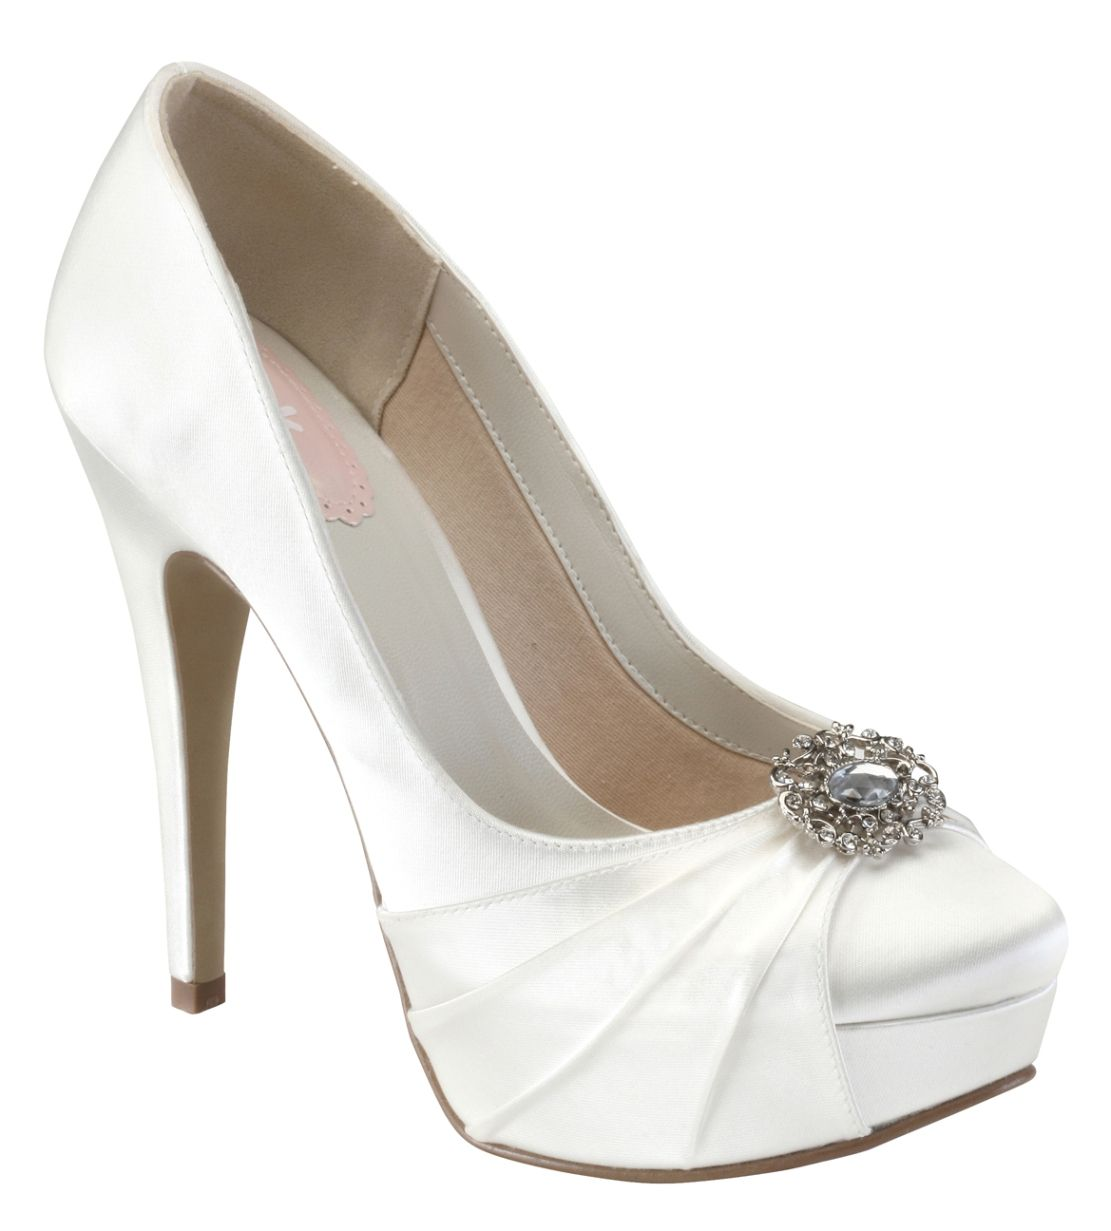 Paradox Pink Caramel Dyeable Wedding Shoes From Elegant Steps 79 95 Dyeable Wedding Shoes Satin Shoes Bride Shoes